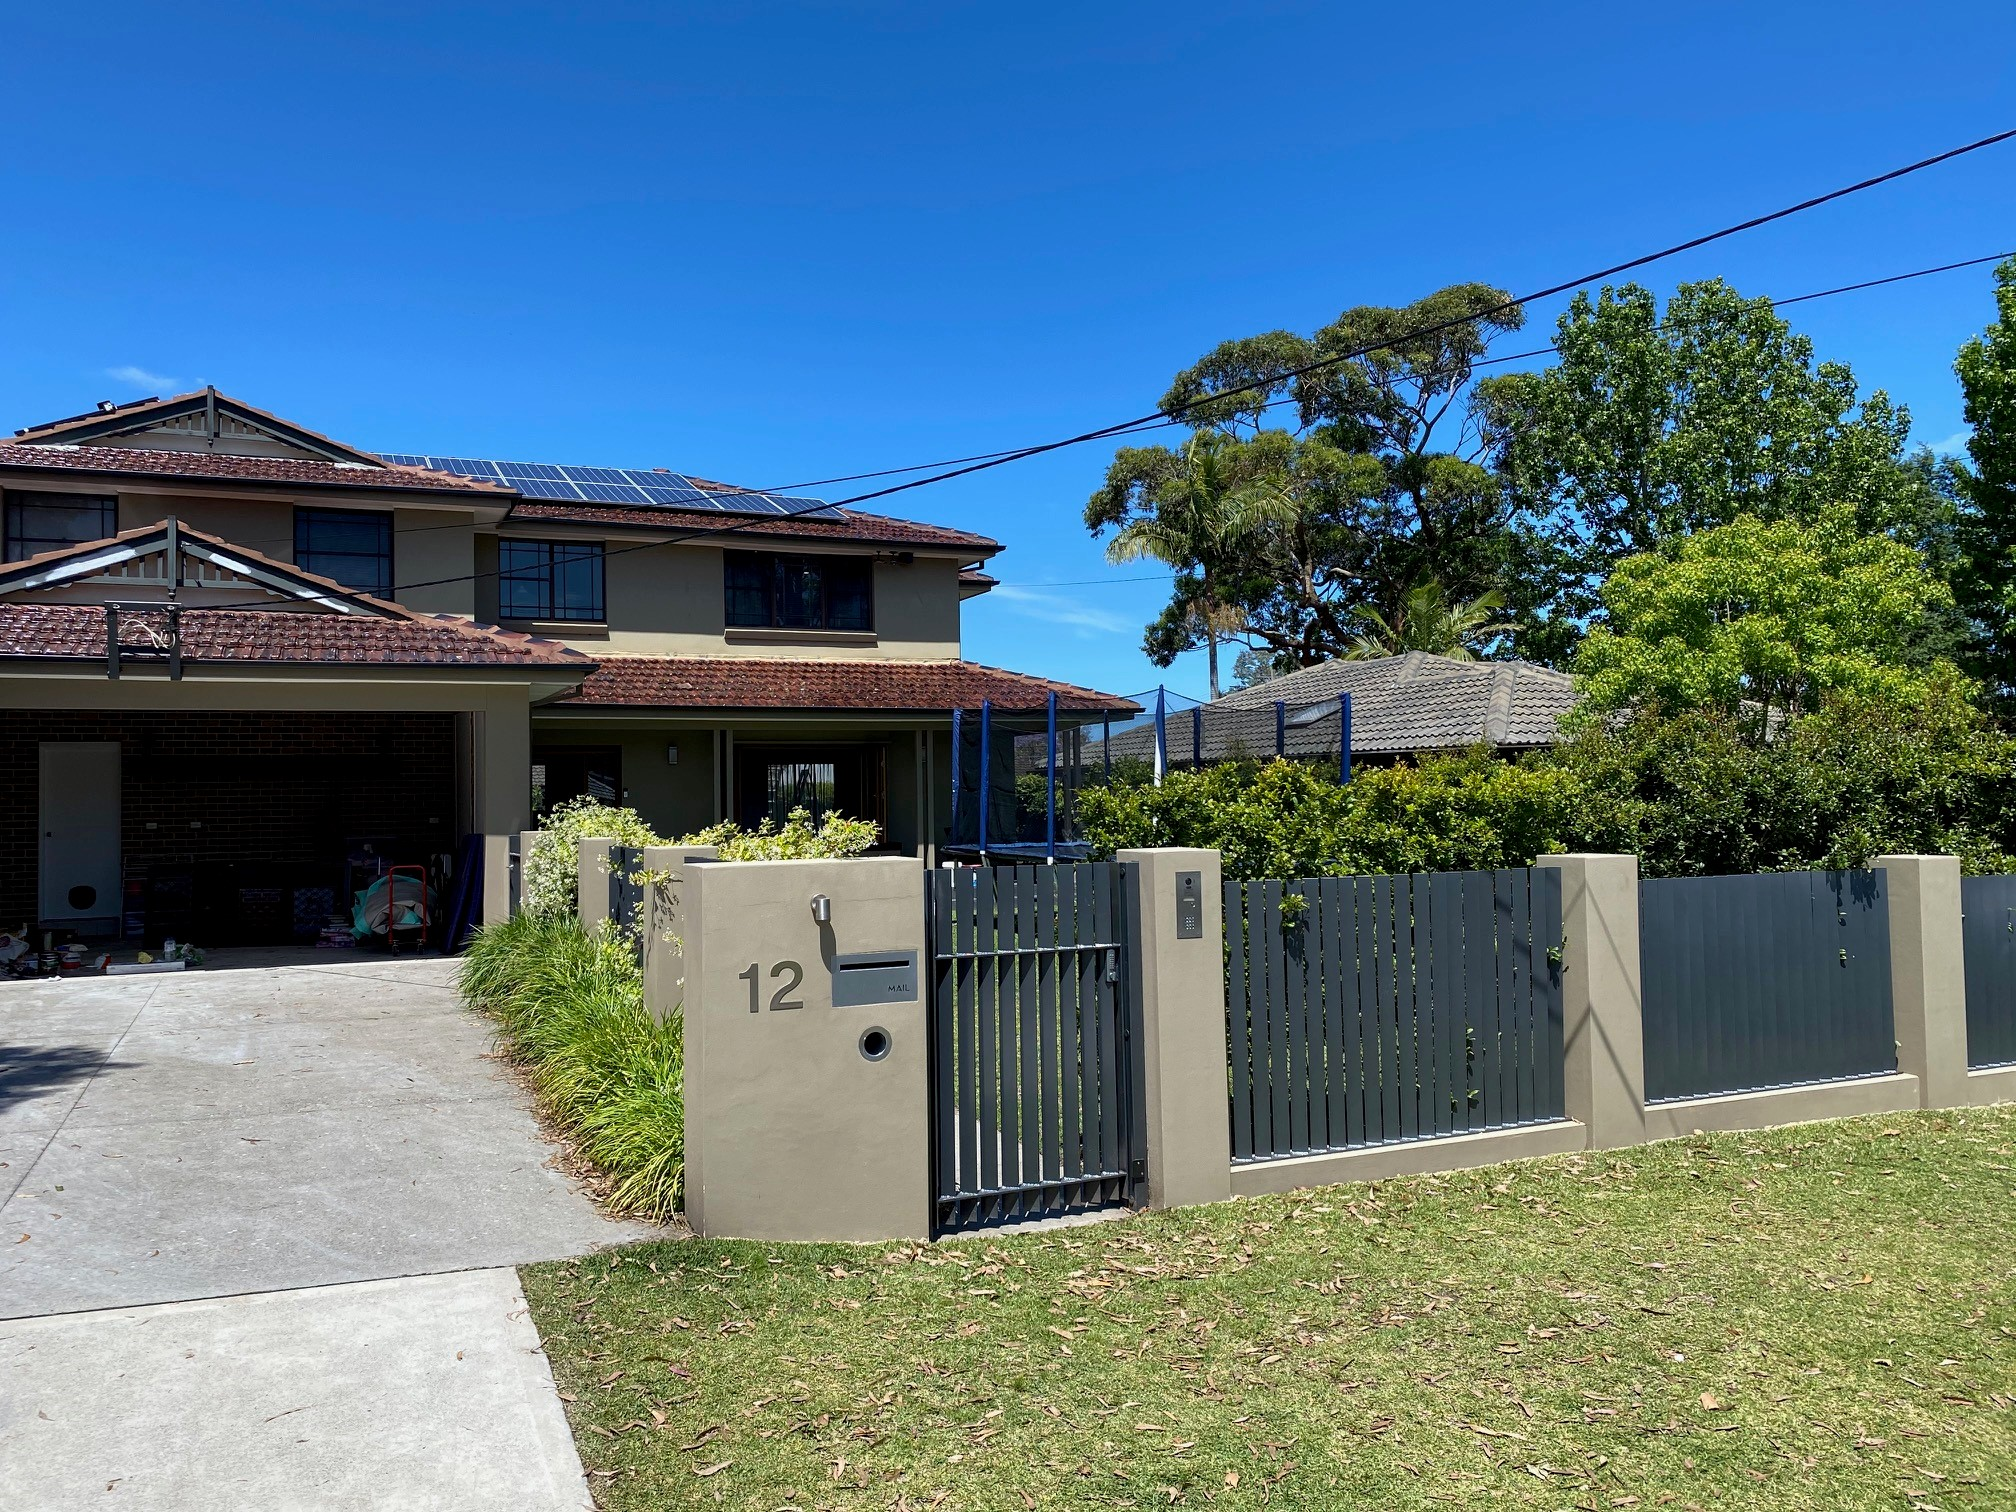 https://www.propertybuyer.com.au/hubfs/nathan & annabel norrie   front